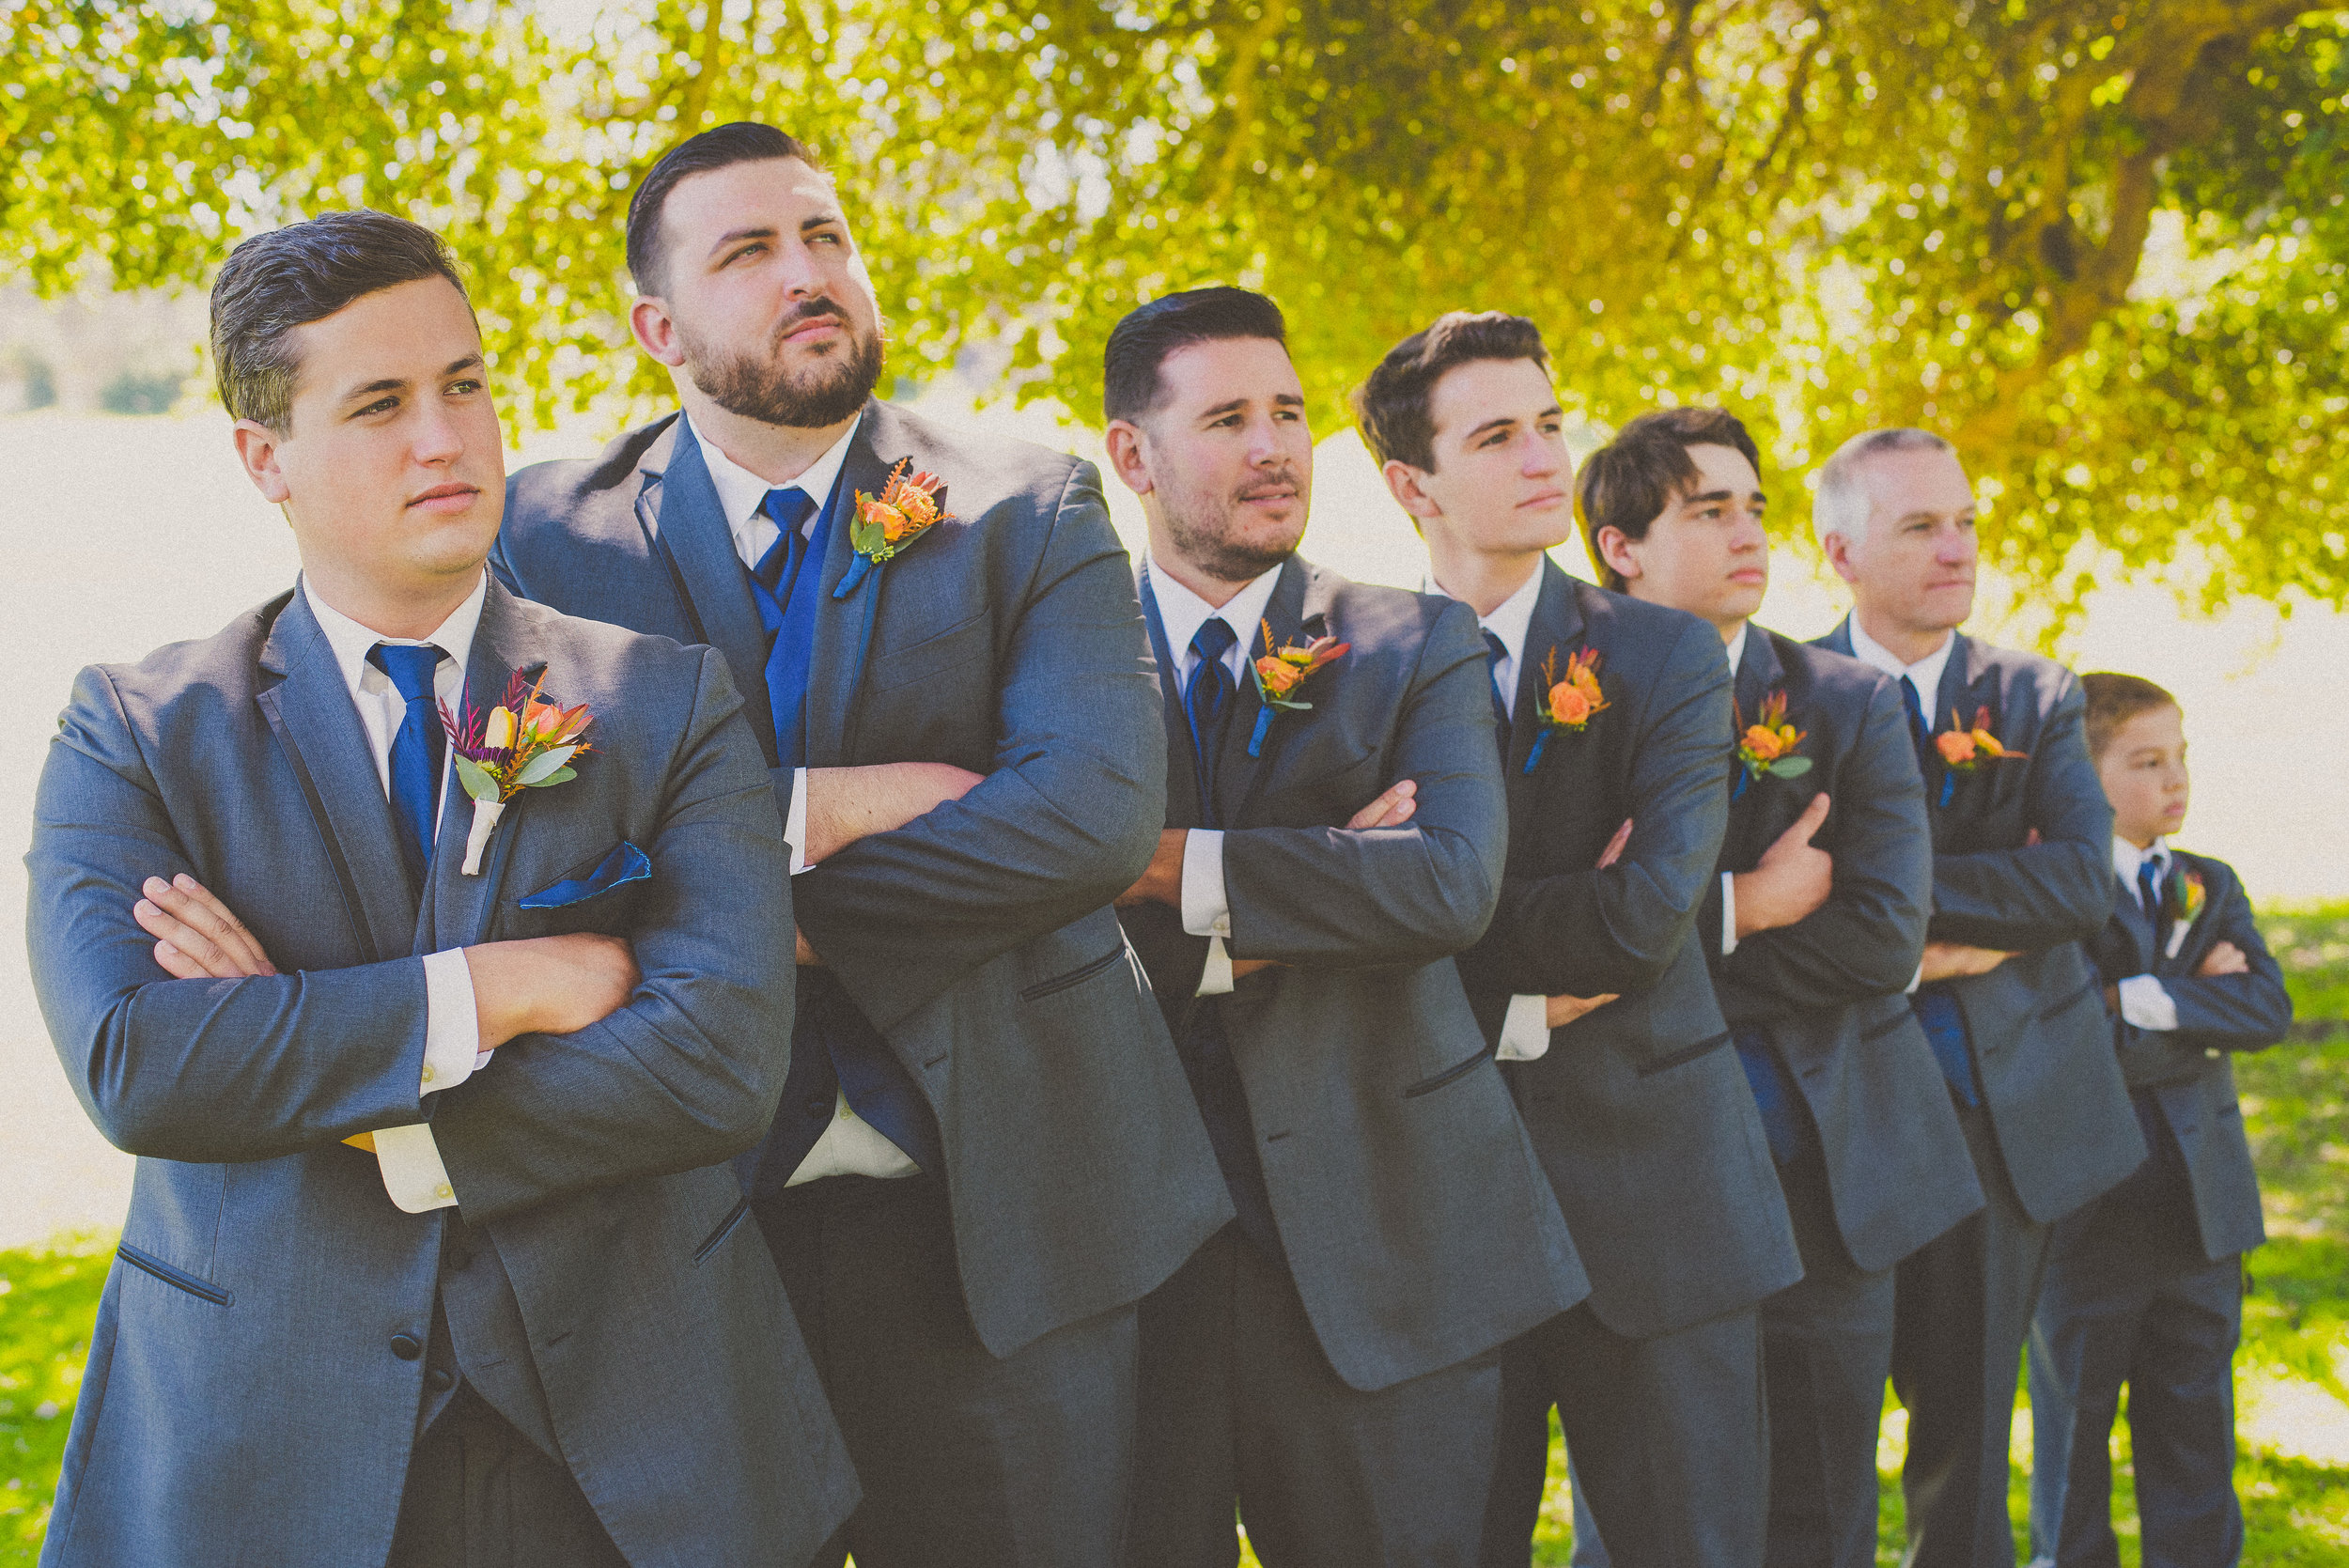 Austin Wedding - Groom & Groomsmen-10.jpg